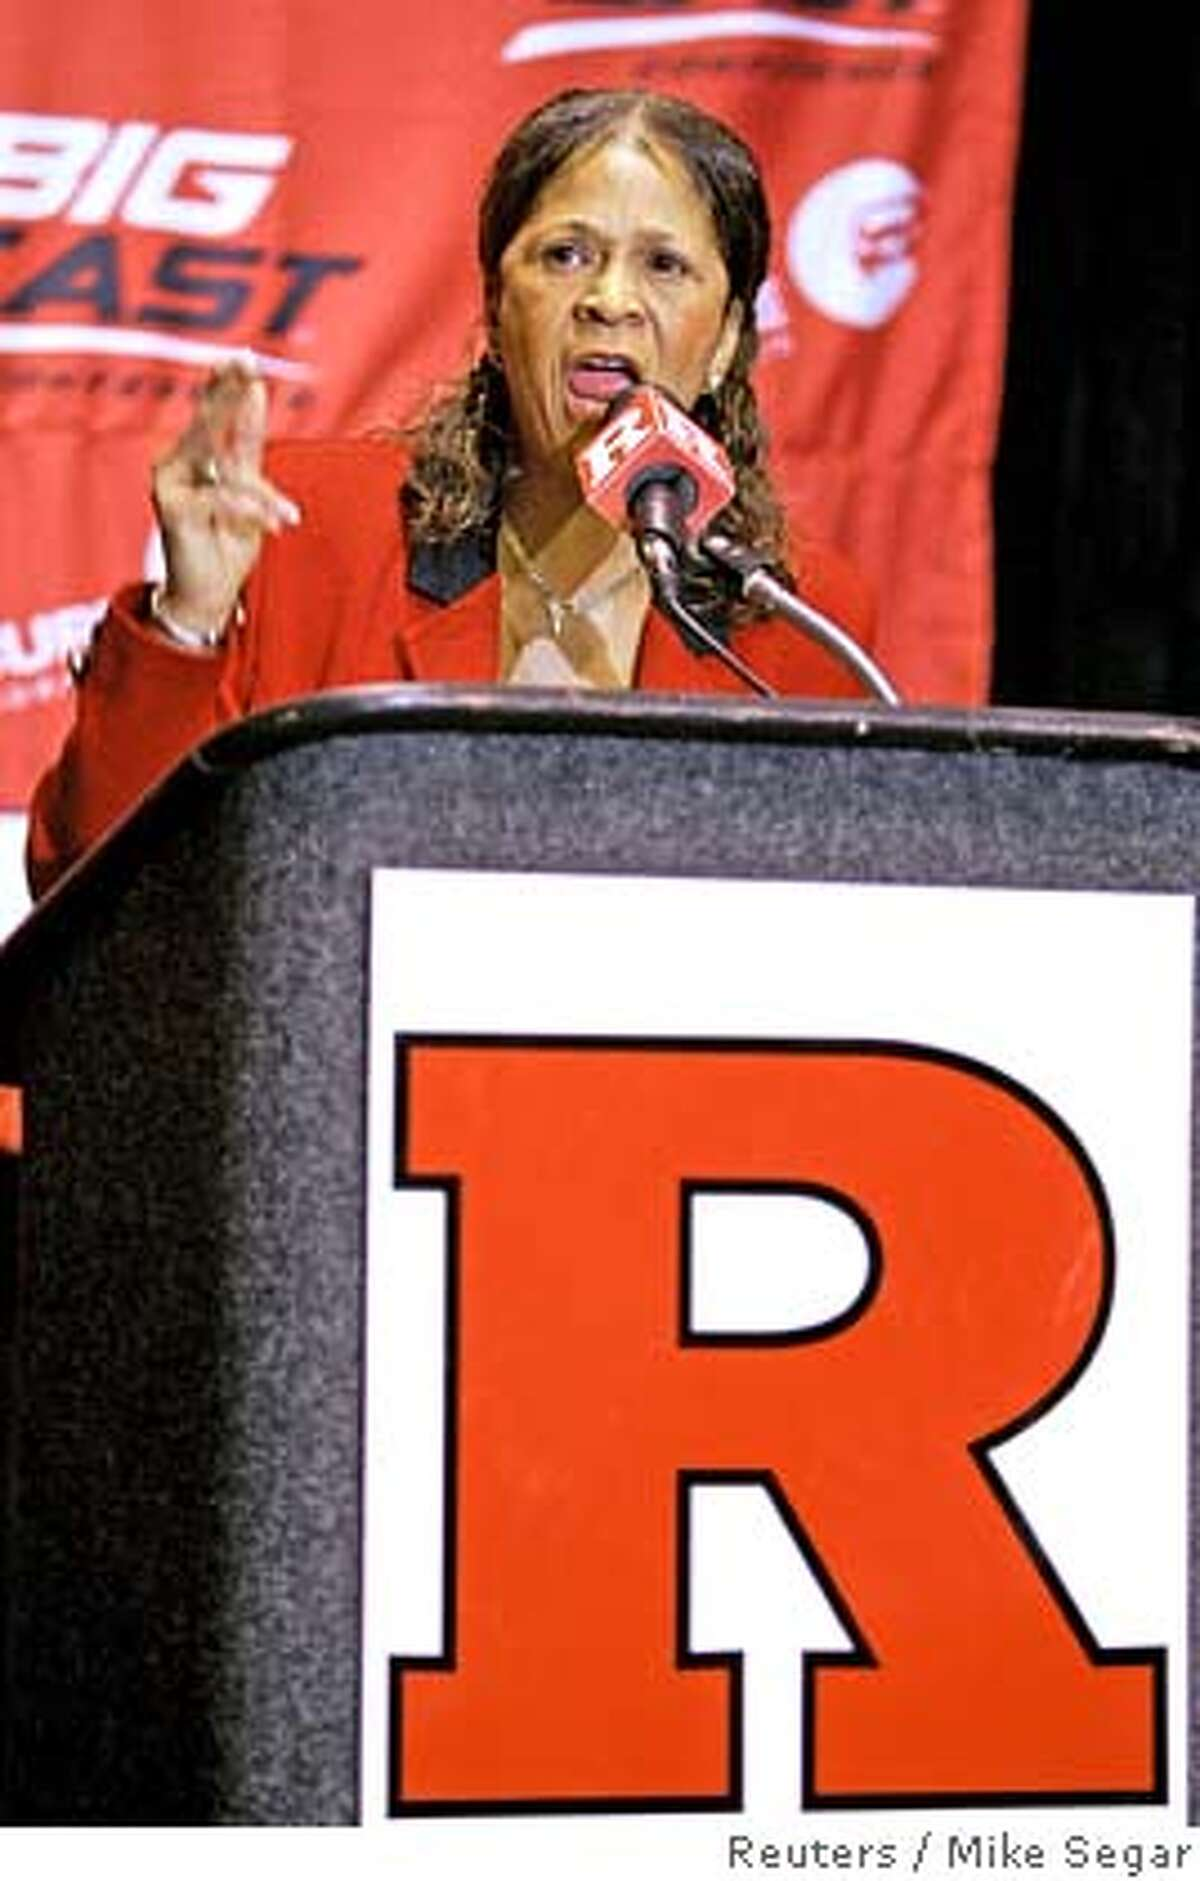 Rutgers University women's basketball team head coach Vivian Stringer speaks at a news conference at the University in New Brunswick, New Jersey, April 10, 2007. The team and school officials held the news conference after U.S. radio personality Don Imus, who has been suspended for two weeks, made racial slurs about the team on his radio and television show last week. REUTERS/Mike Segar (UNITED STATES)